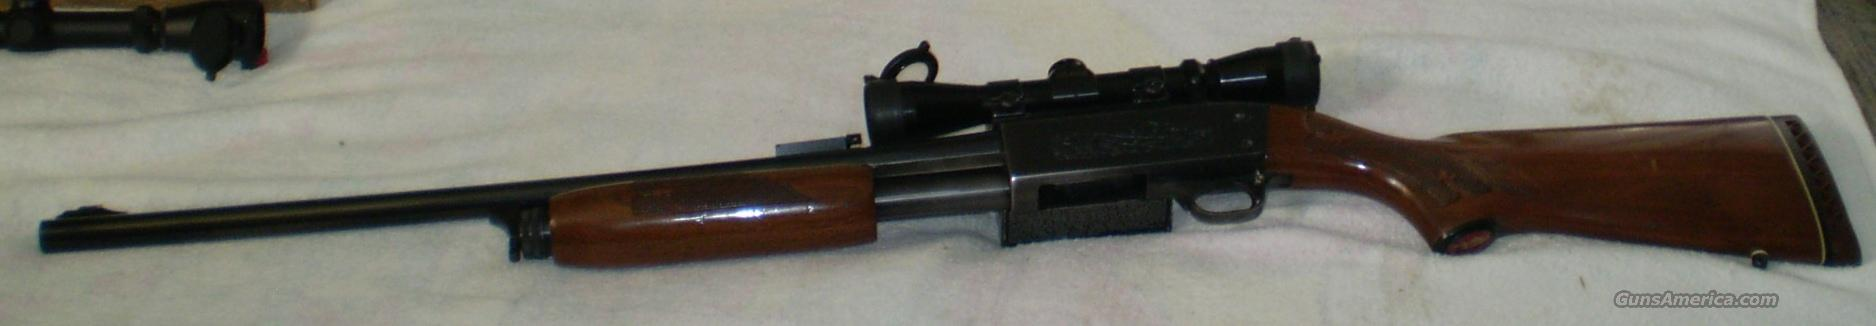 Ithaca Model 37 Feather light Hastings Rifled slug barrel w/scope  Guns > Shotguns > Ithaca Shotguns > Pump